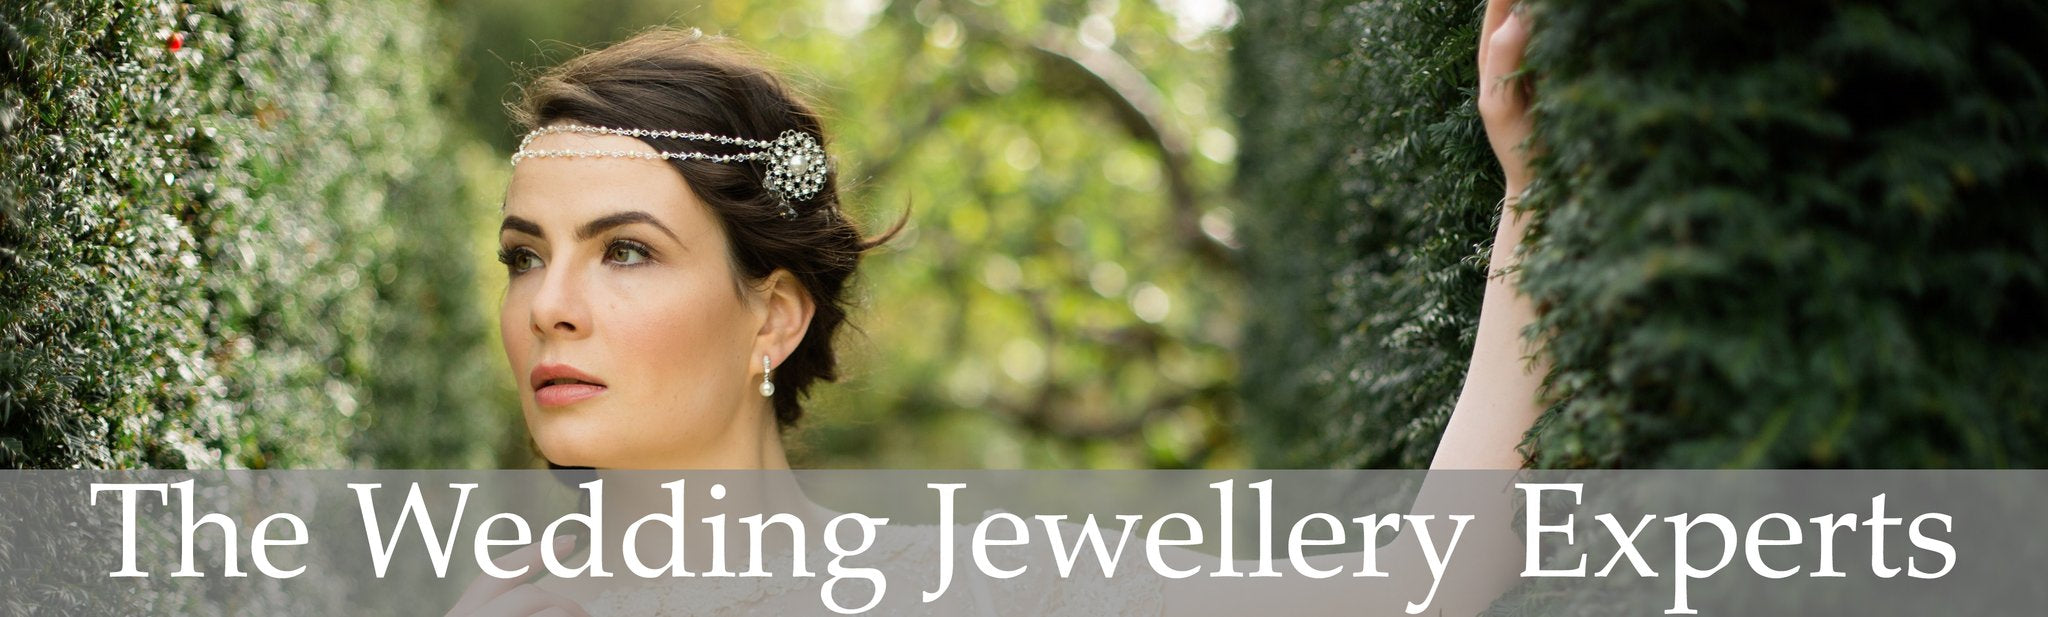 The Wedding Jewellery & Hair Accessory Experts